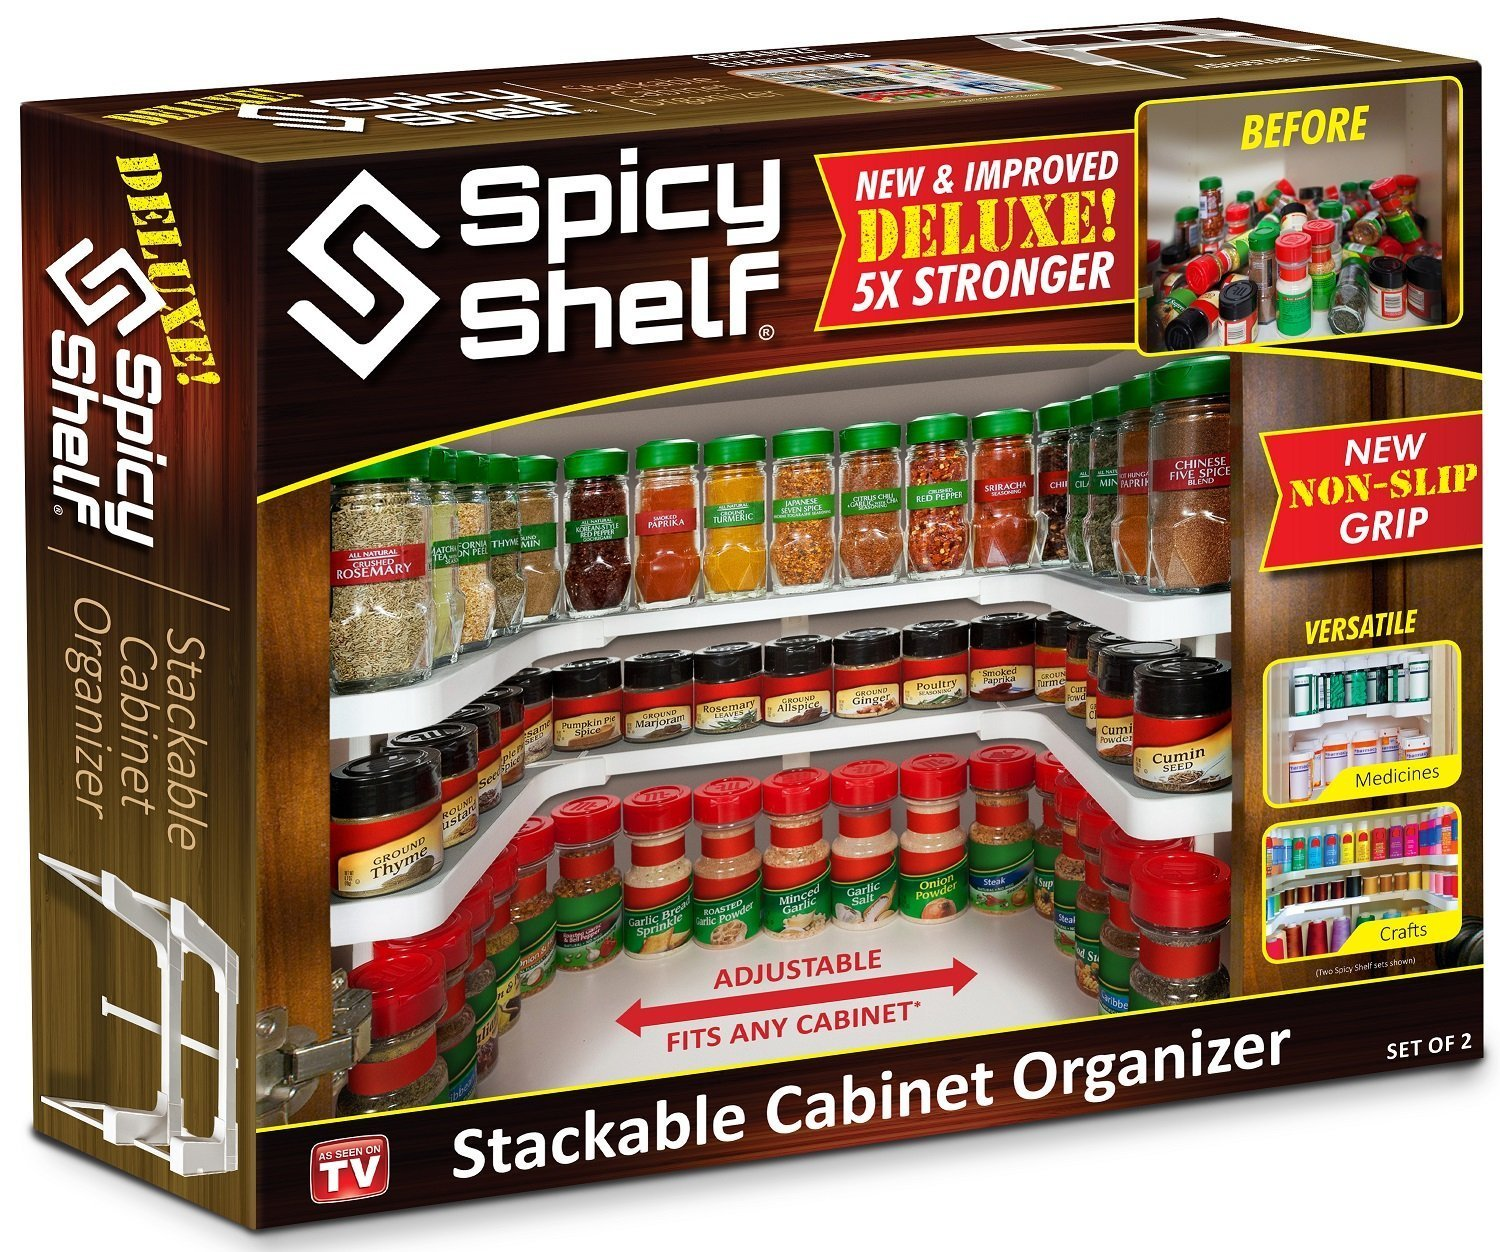 Spicy Shelf Deluxe - Expandable Spice Rack and Stackable Cabinet & Pantry Organizer (1 Set of 2 shelves) - As seen on TV by Spicy Shelf